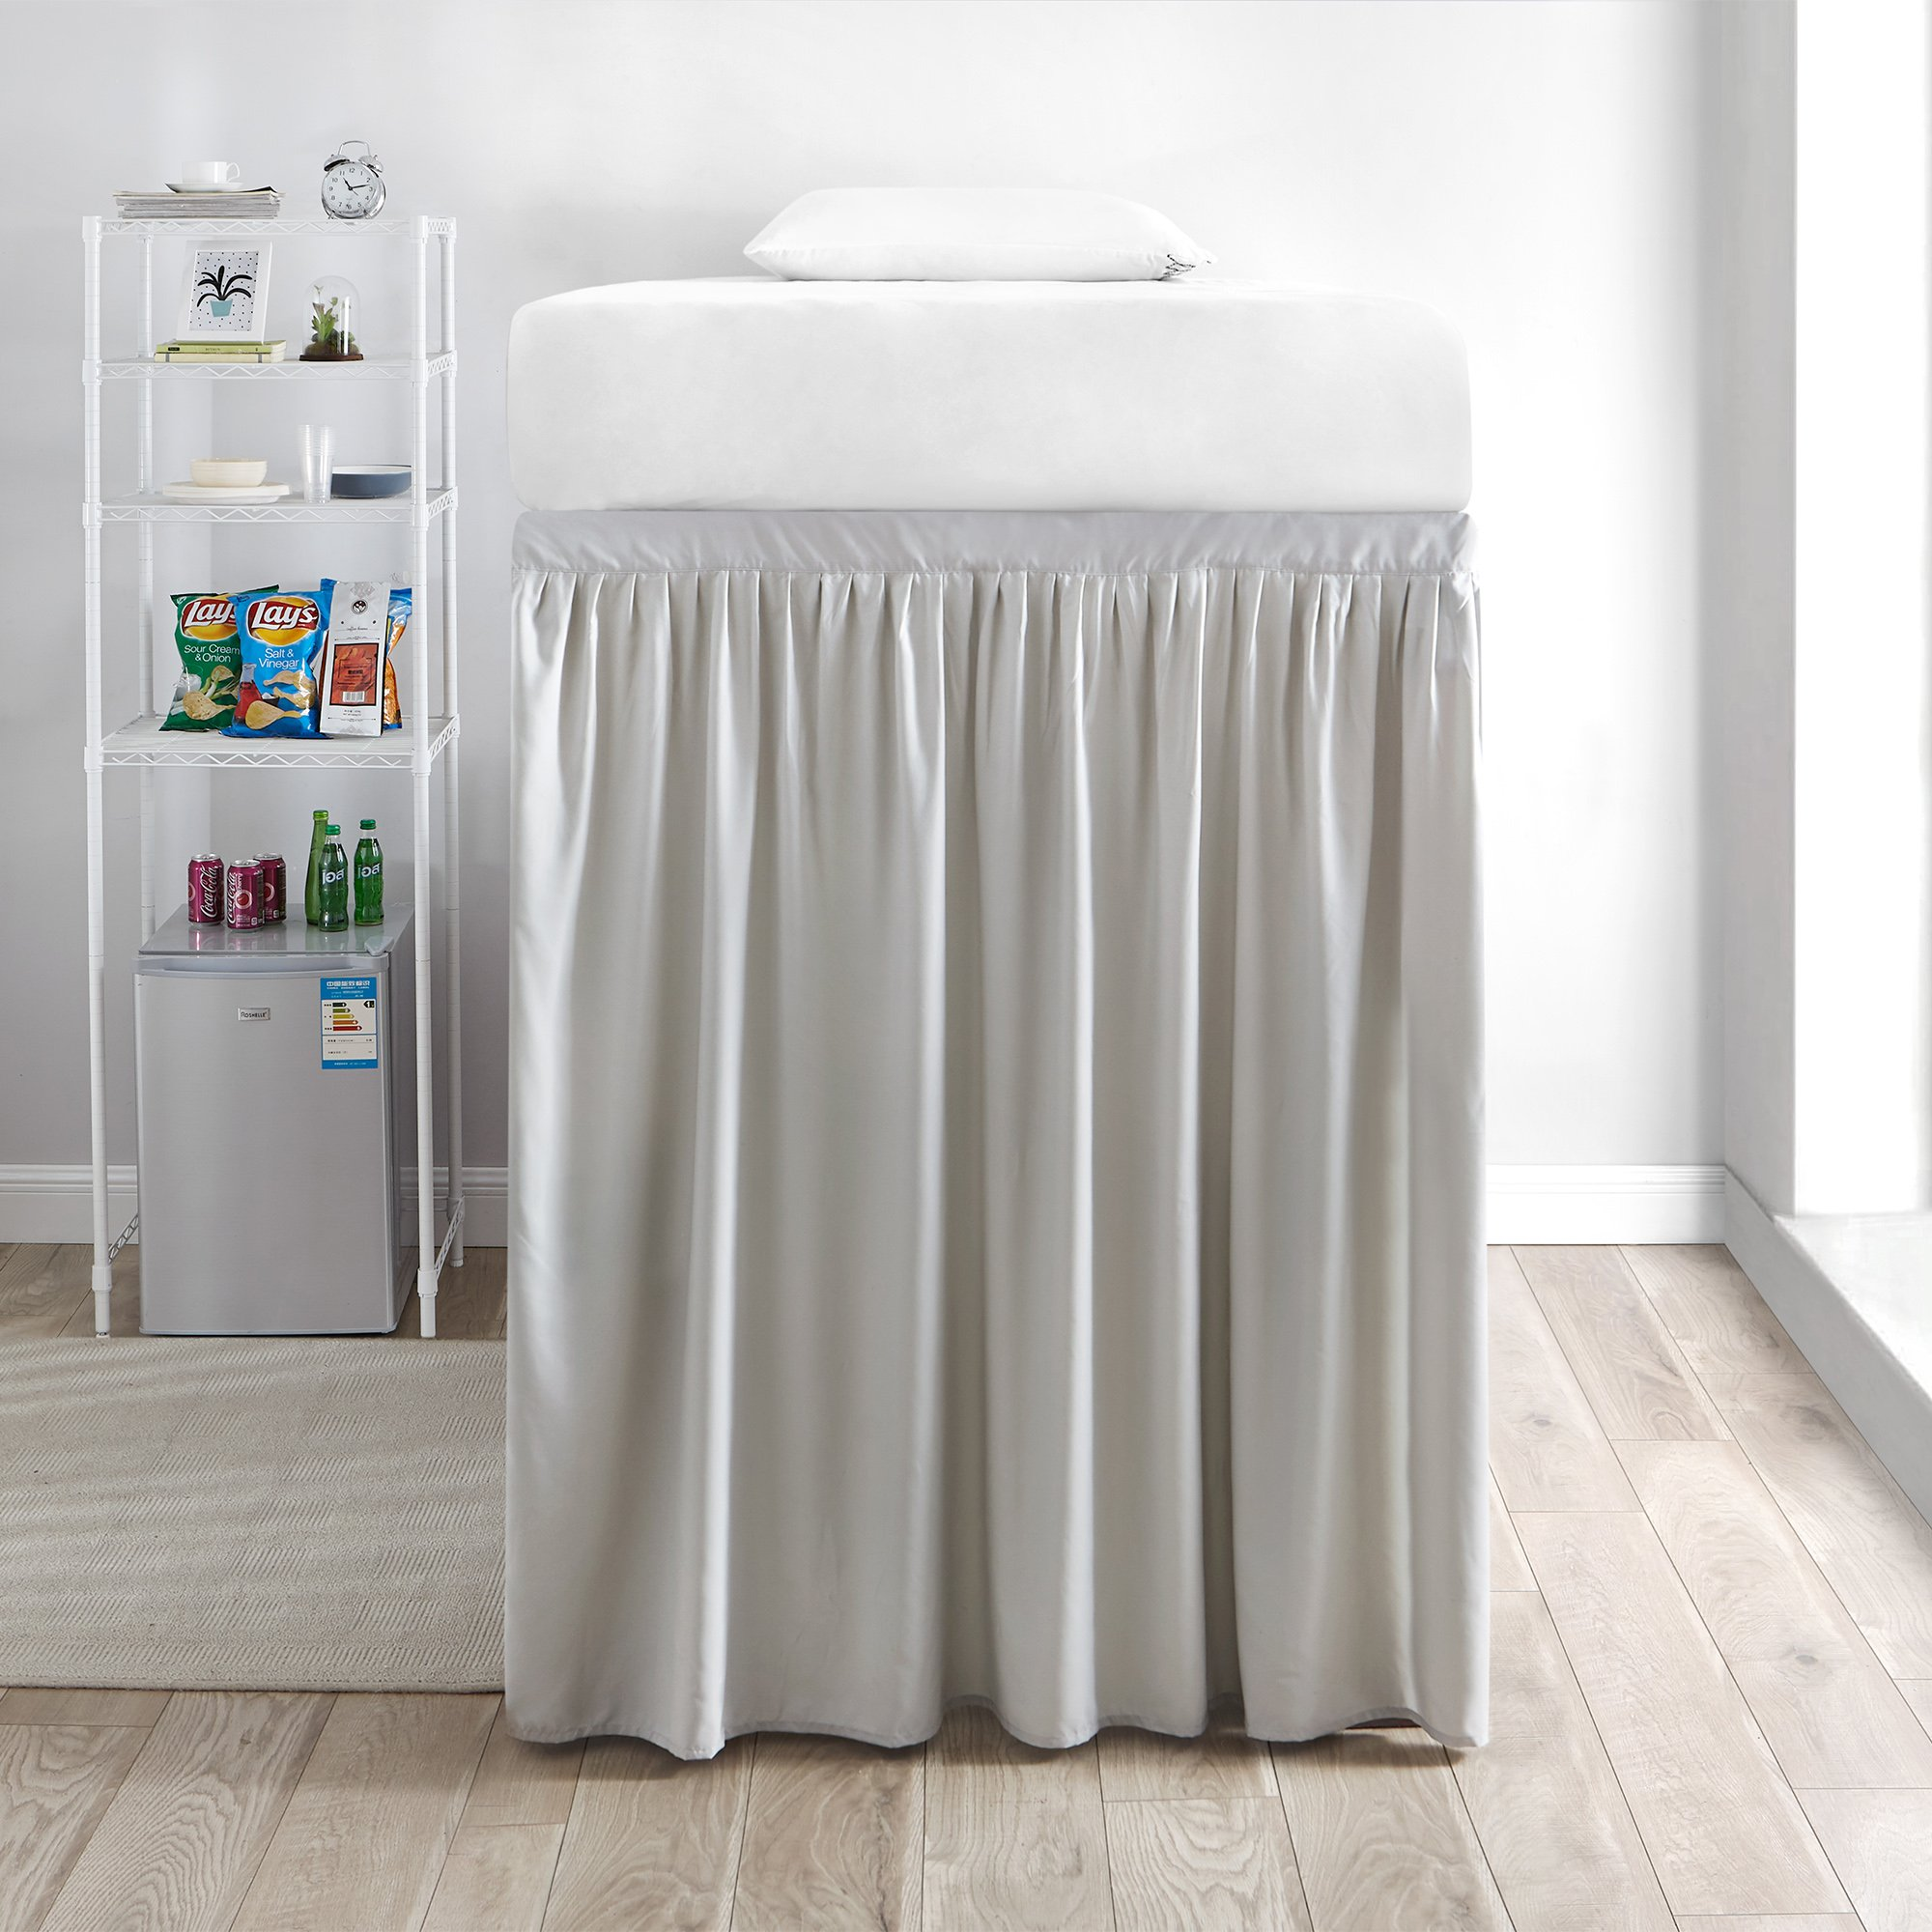 DormCo Extended Bed Skirt Twin XL (3 Panel Set) - Silver Birch